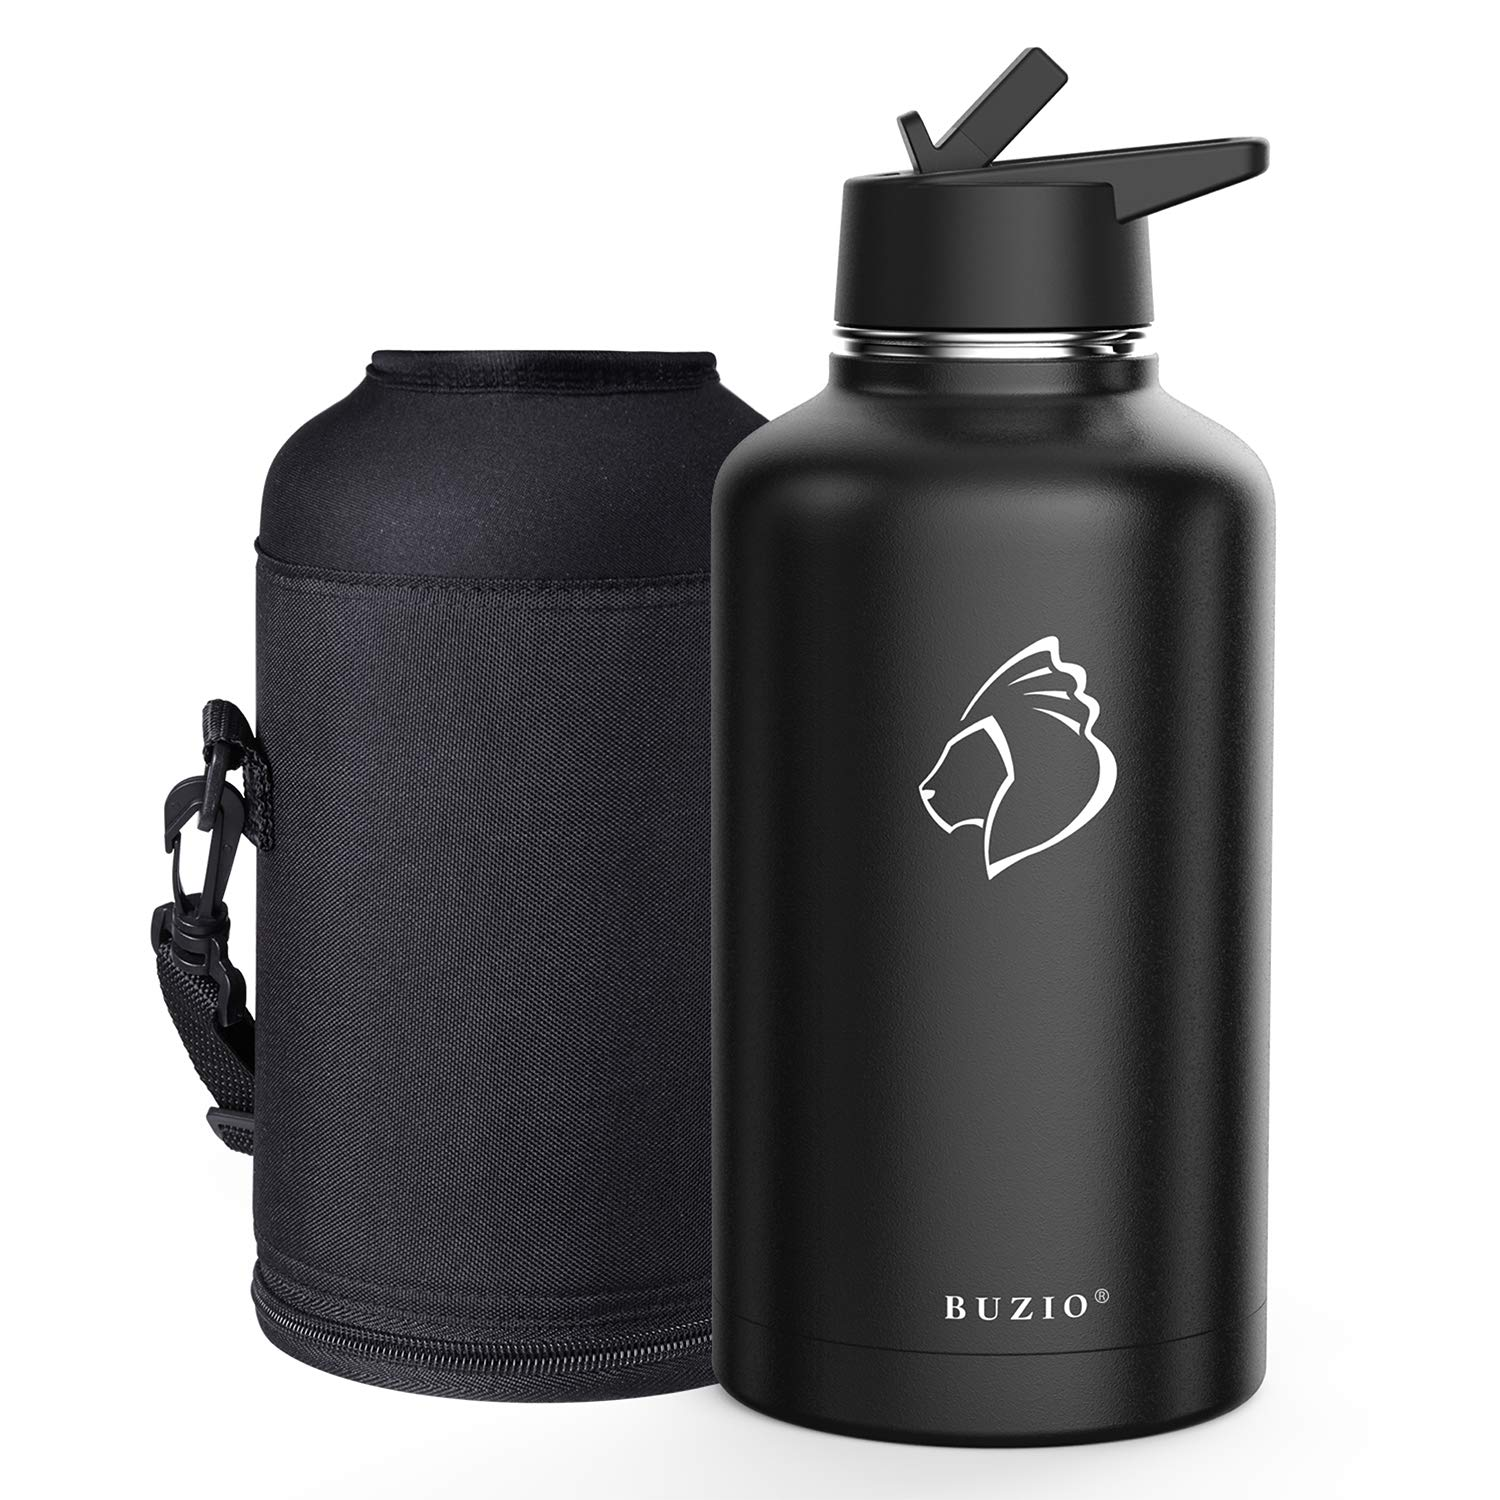 BUZIO Vacuum Insulated Stainless Steel Water Bottle 64oz (Cold for 48 Hrs/Hot for 24 Hrs) BPA Free Double Wall Travel Mug/Flask for Outdoor Sports Hiking, Cycling, Camping, Running